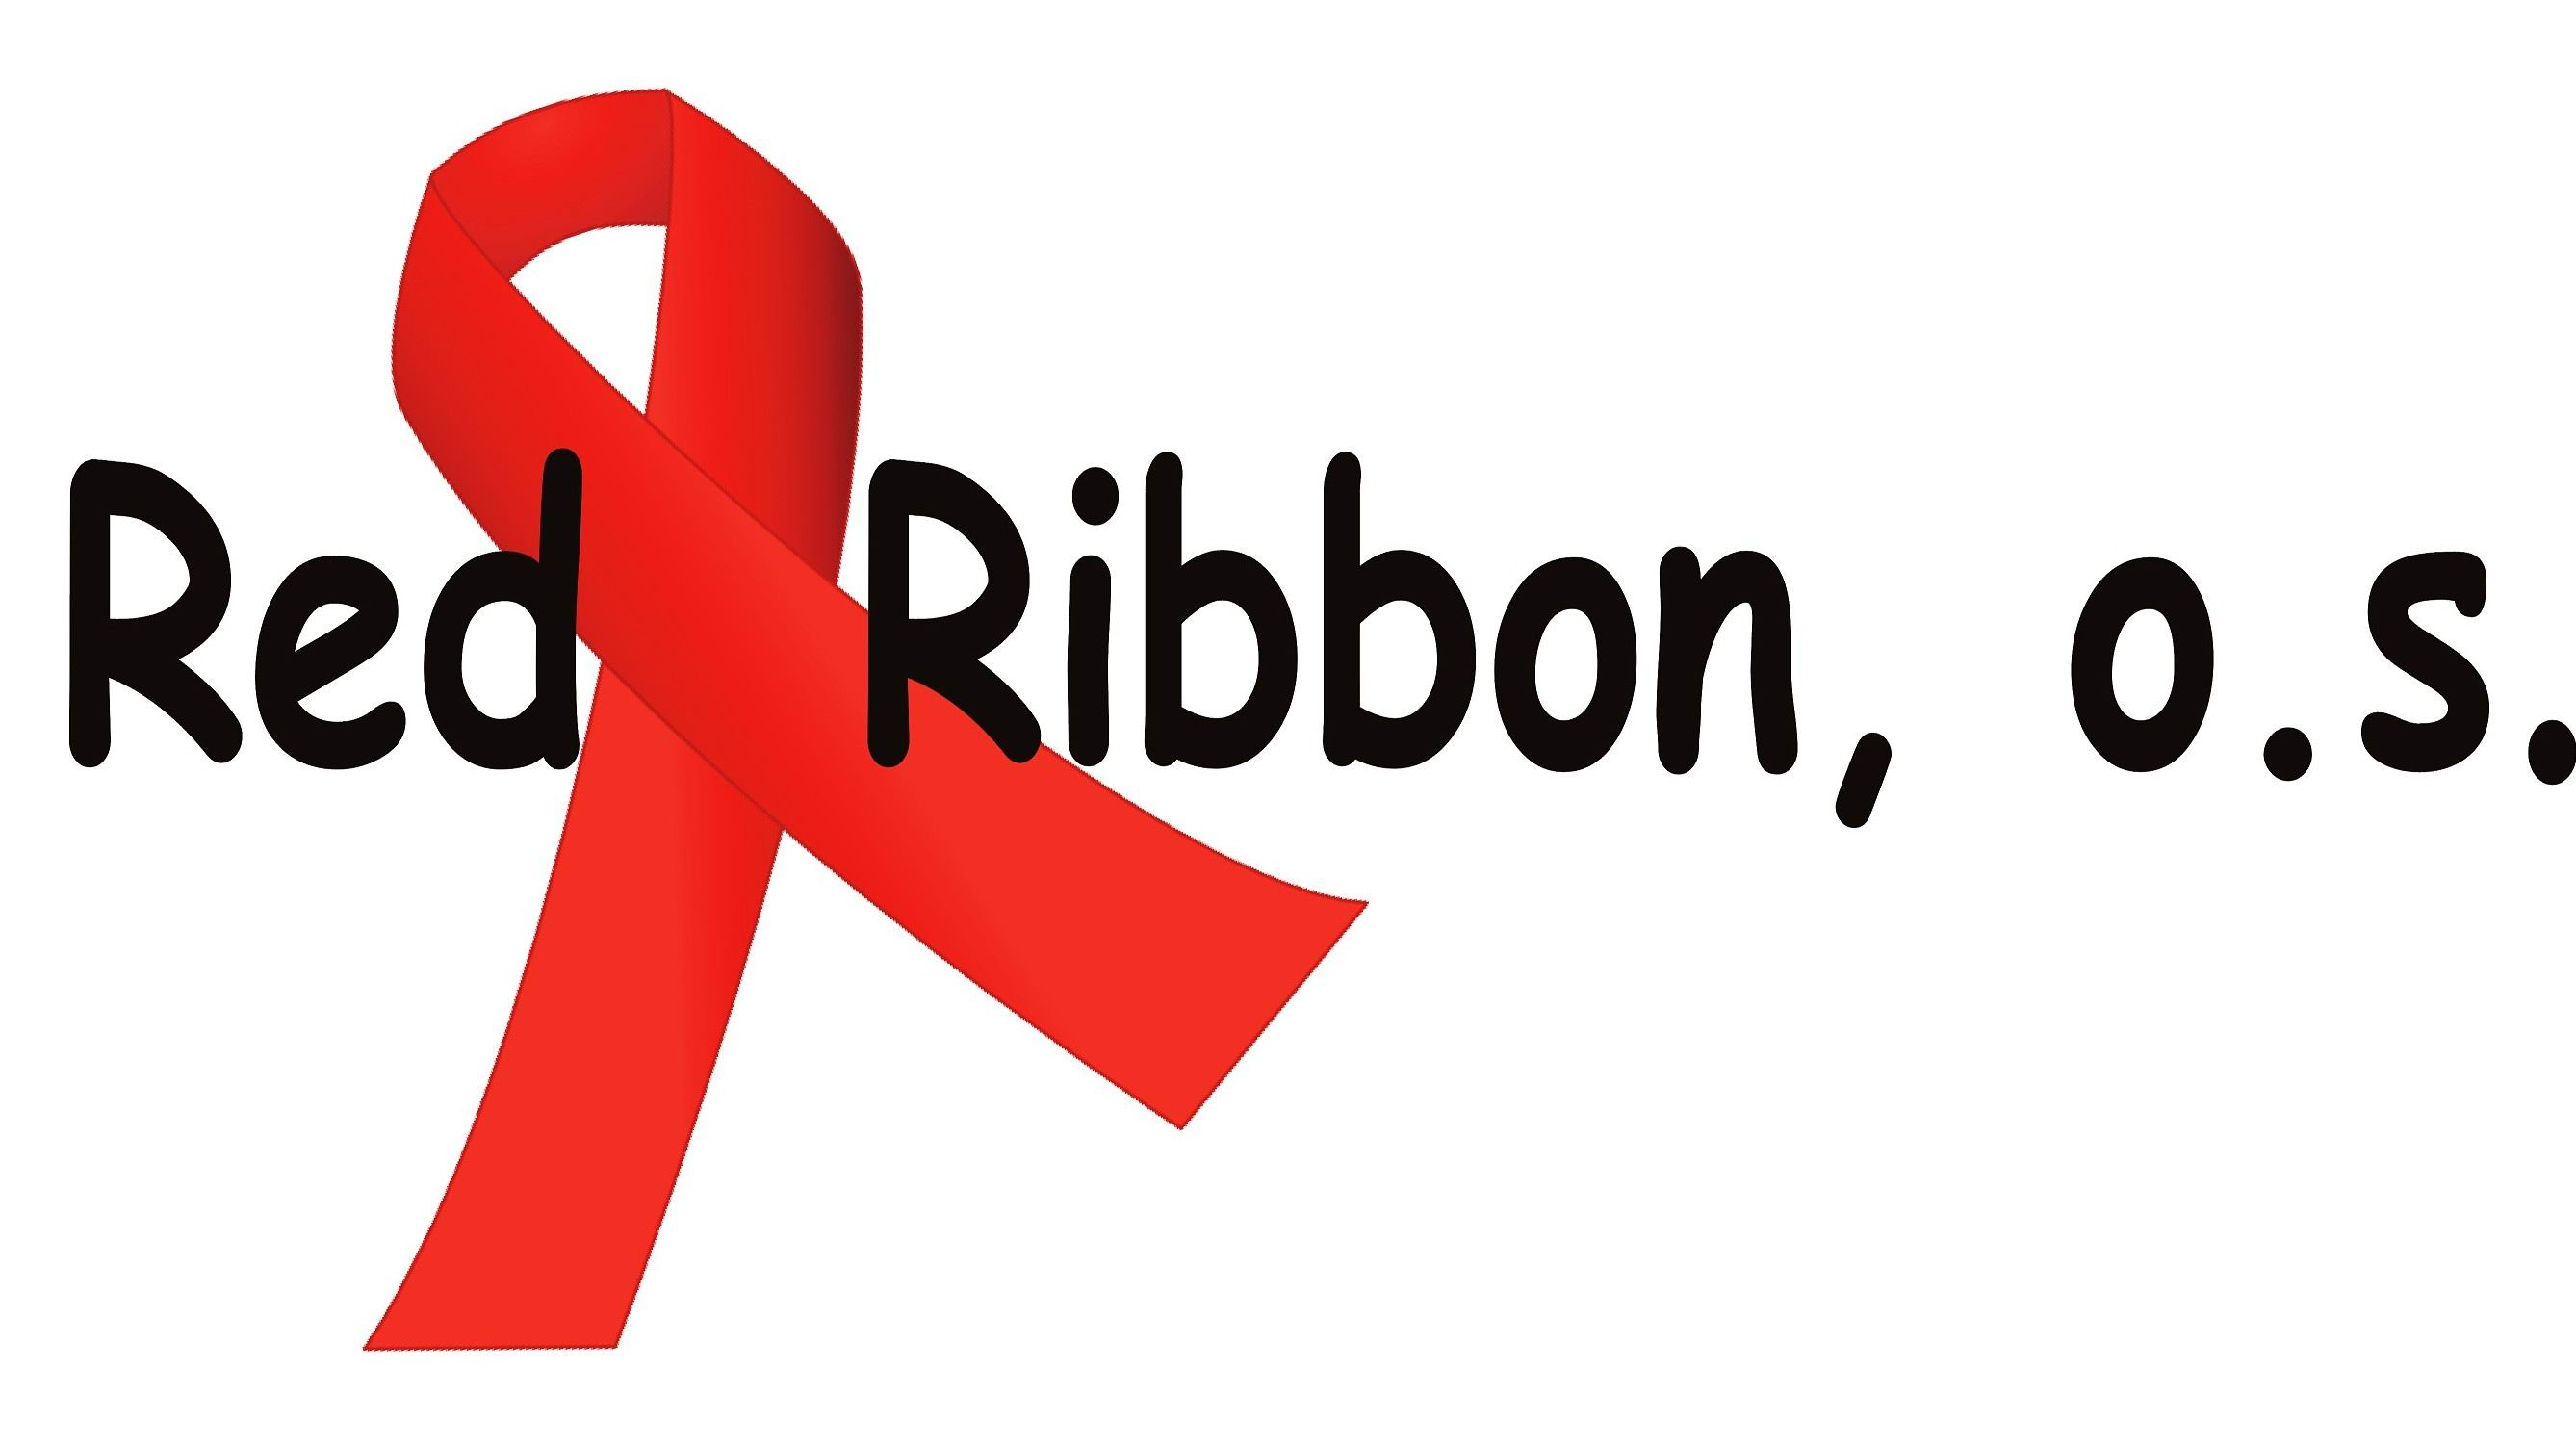 Red ribbon o.s.